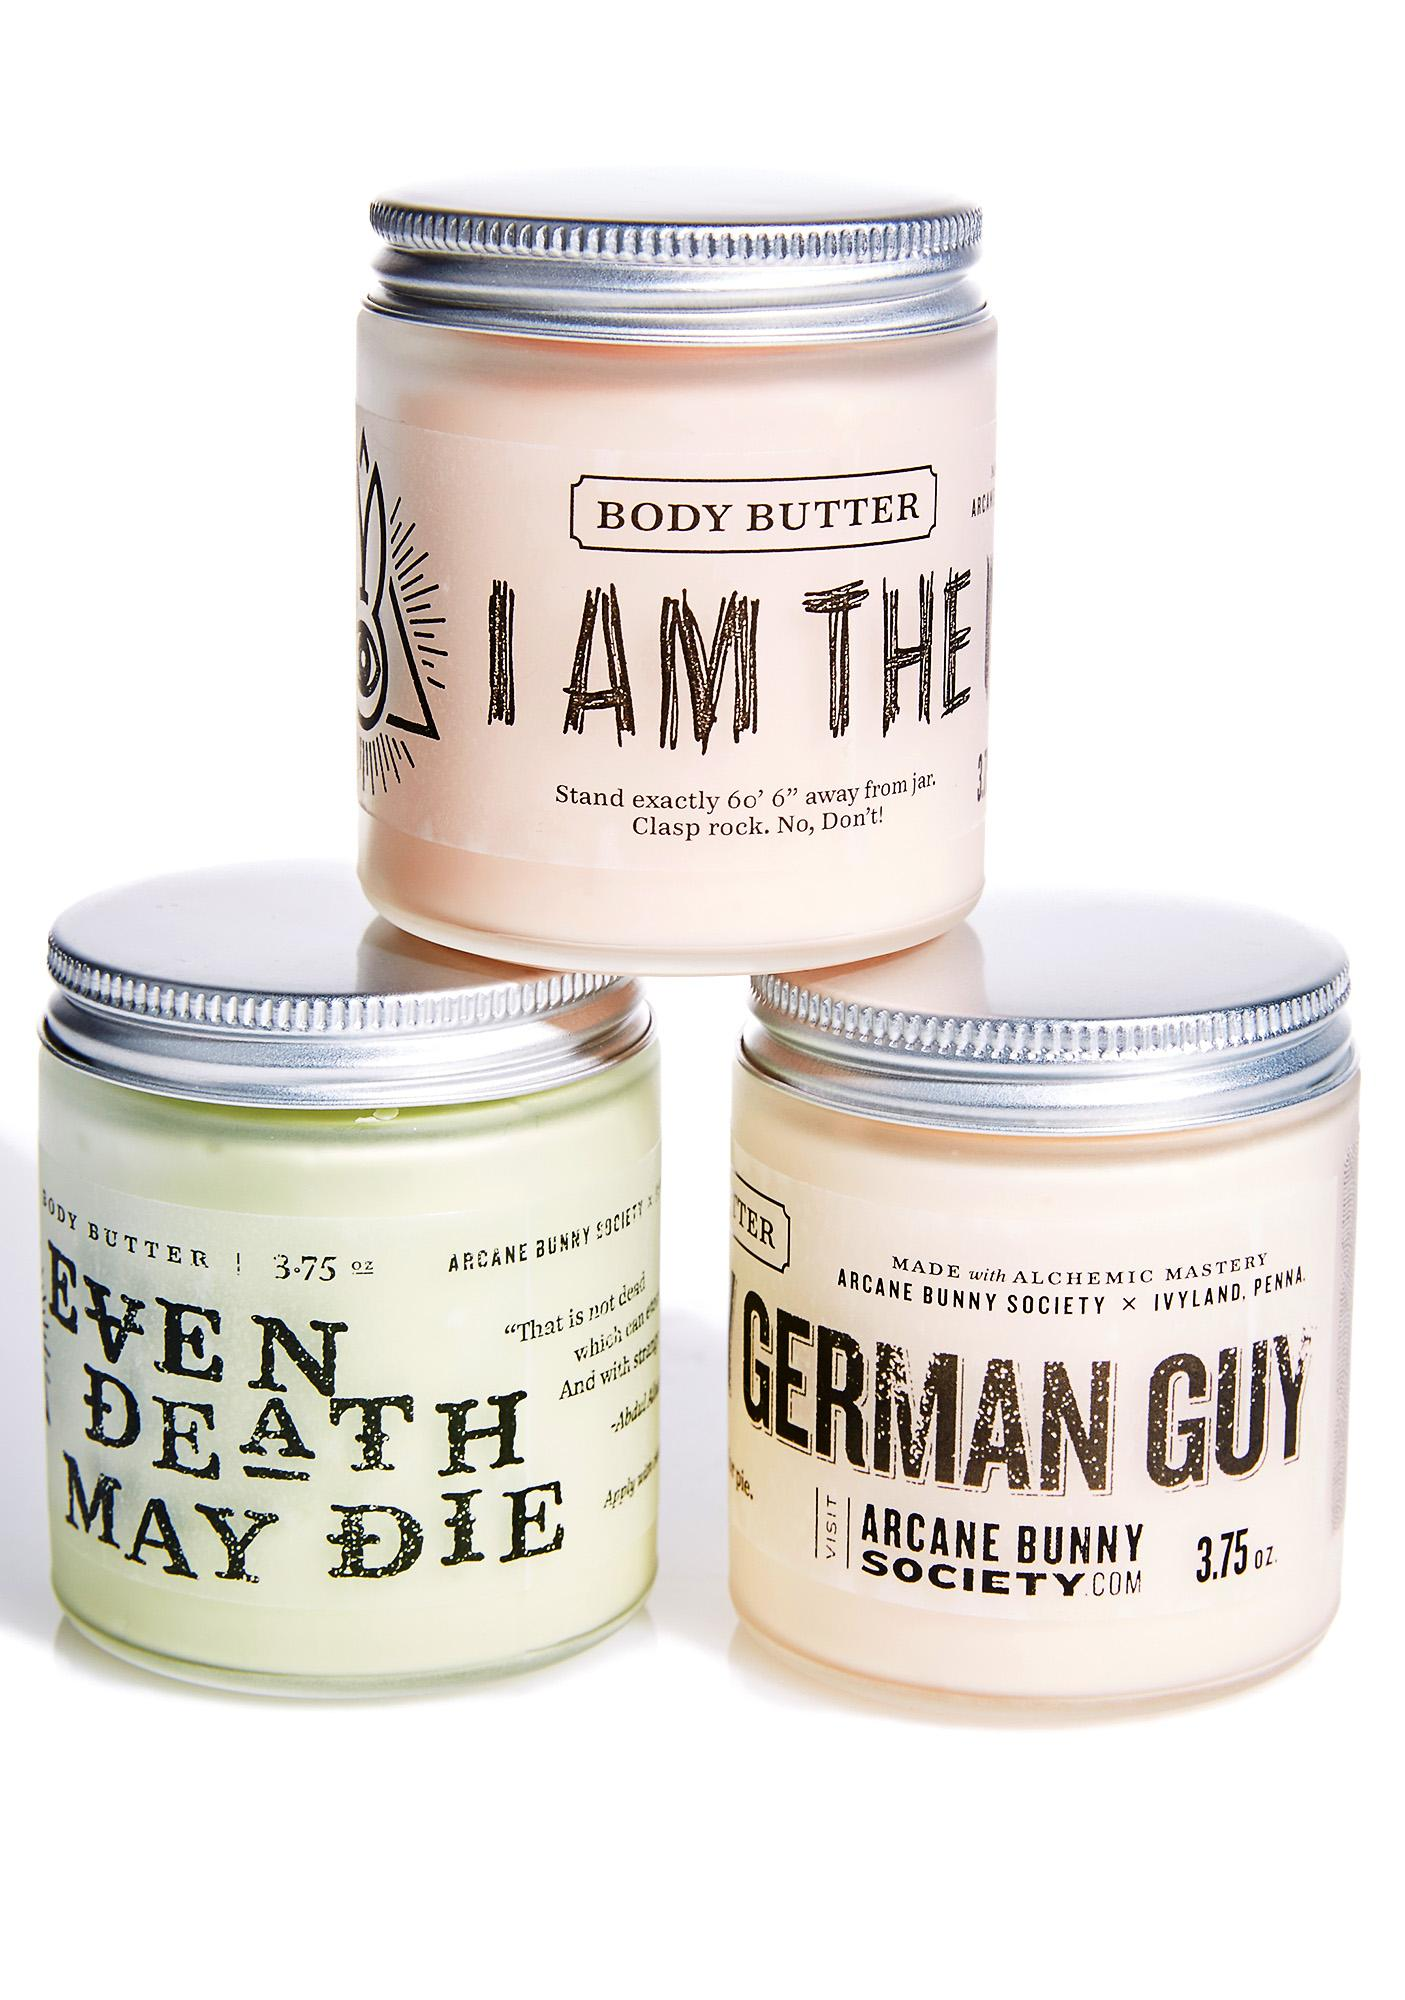 Arcane Bunny Society Scary German Guy Body Butter